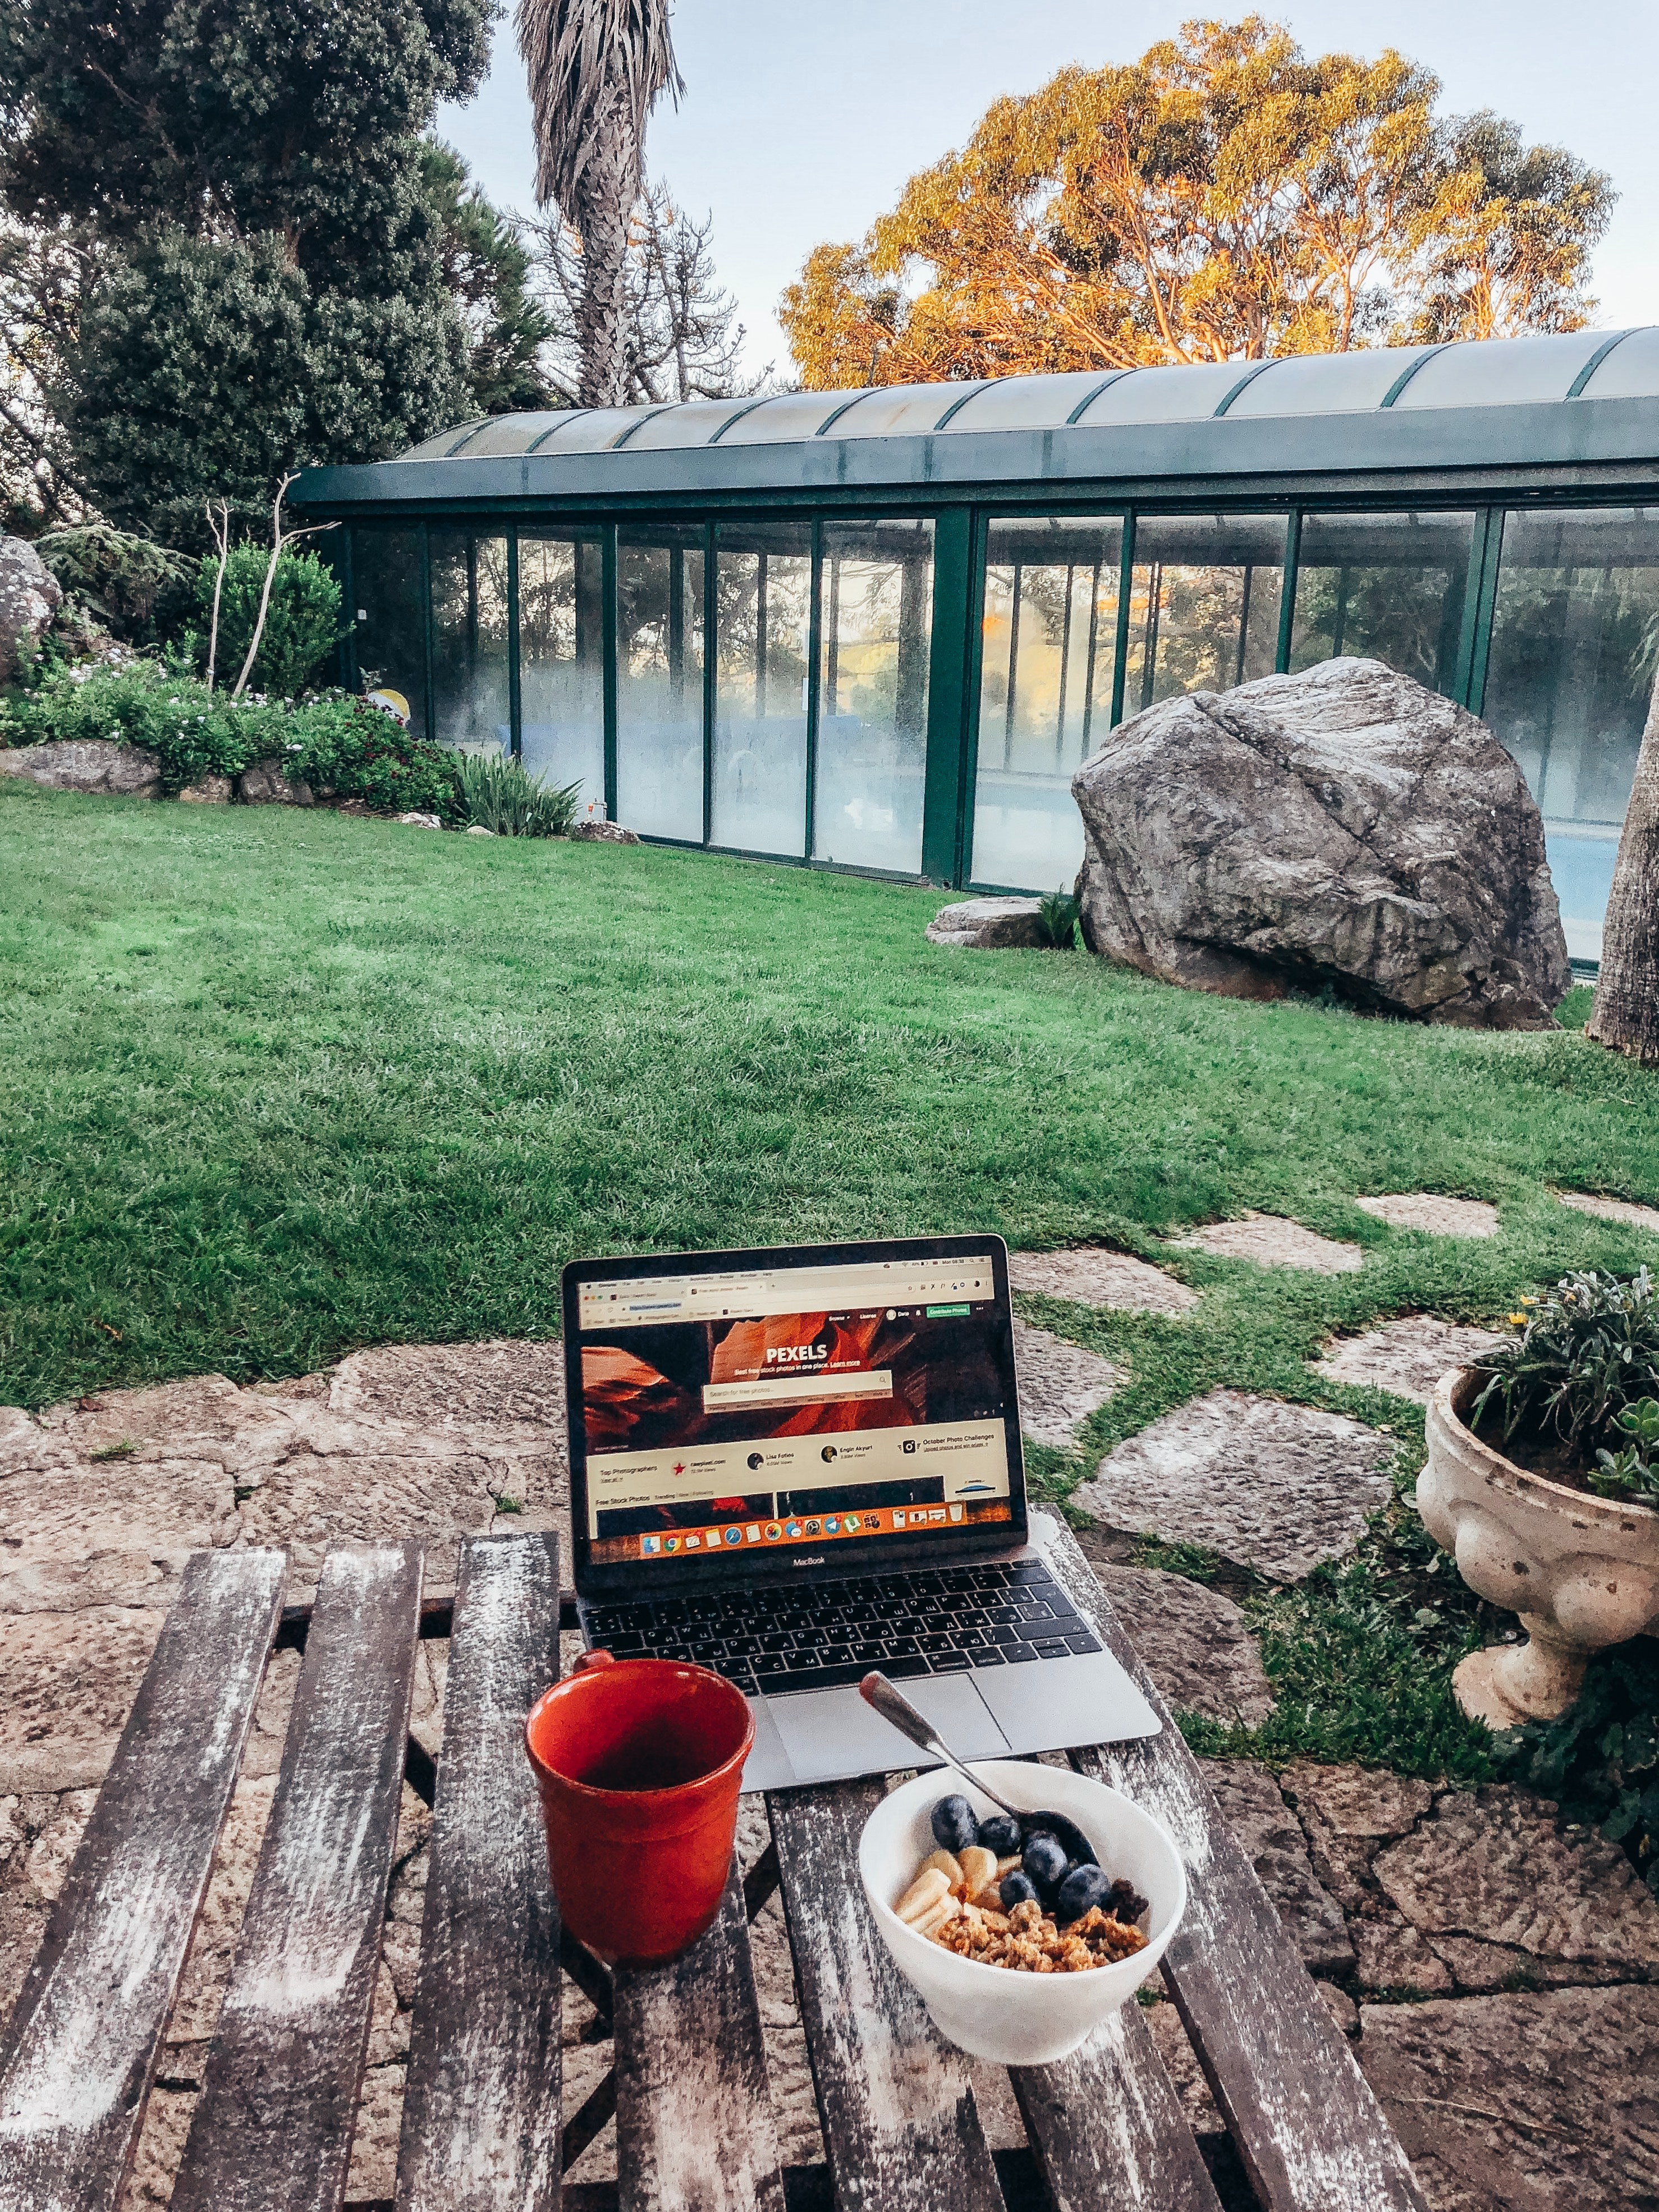 Computer in outdoor setting, Grass and Gazebo